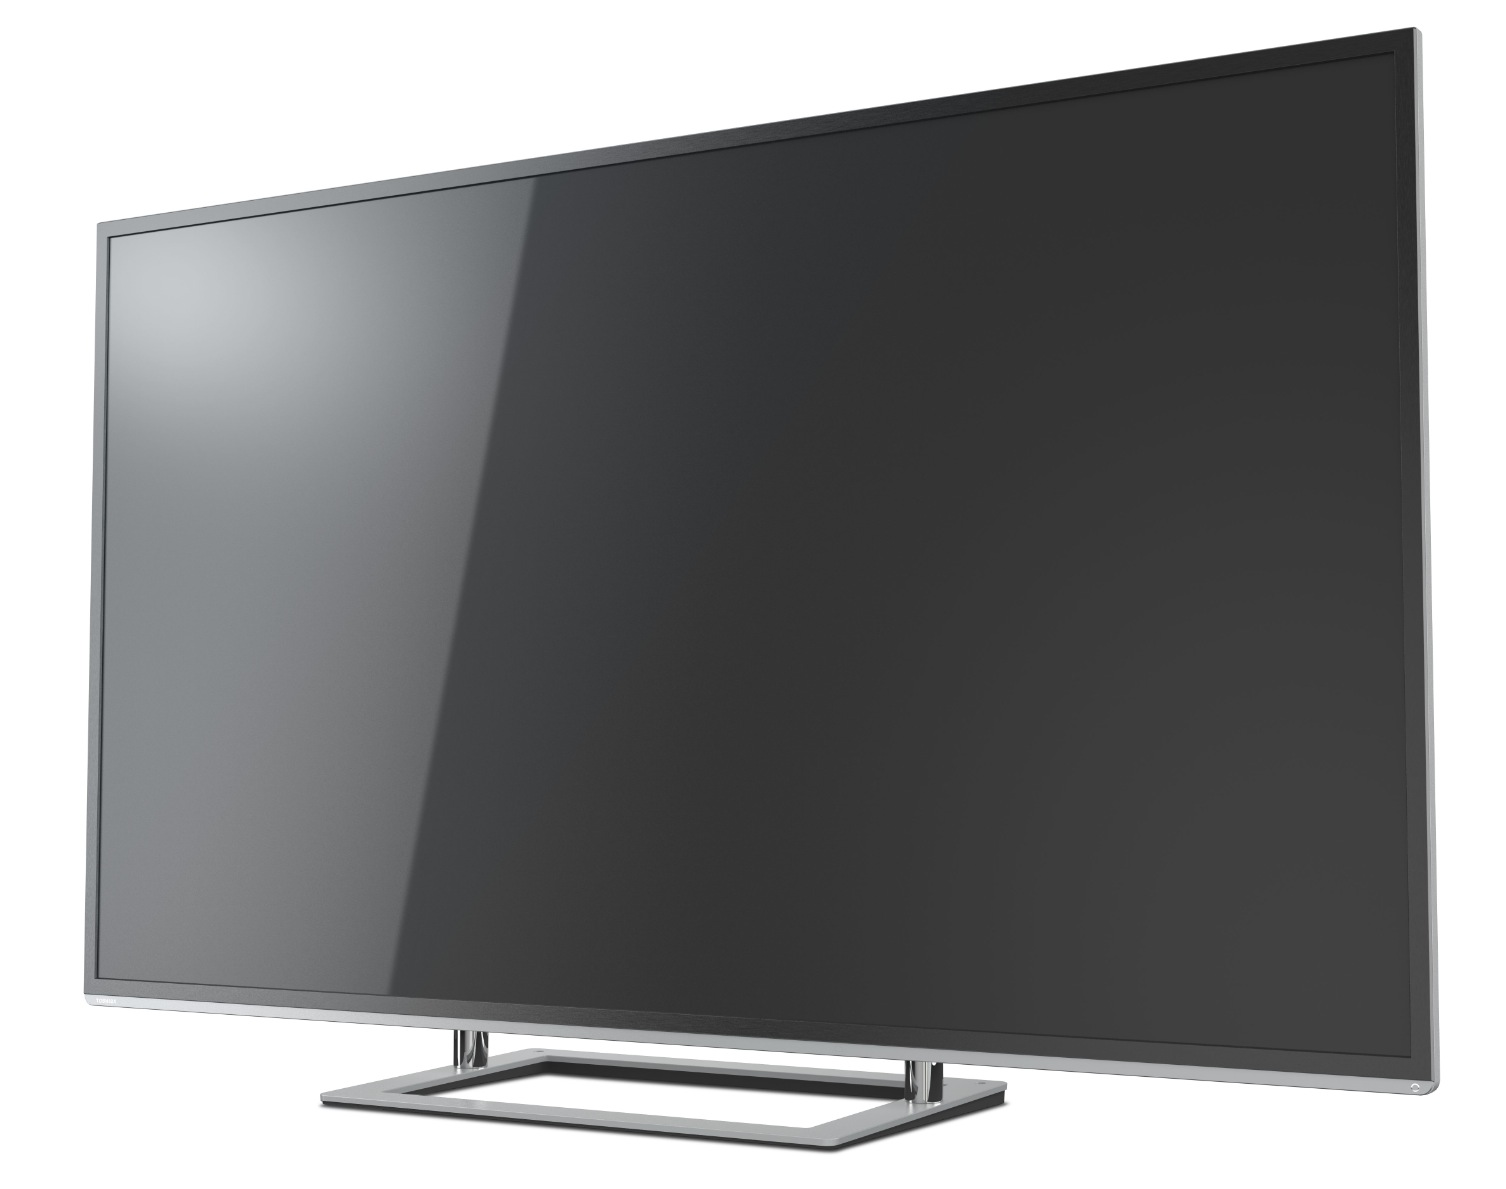 Toshiba Unveils 2013 TV Line-Up And PCS At Consumer Electronics Show